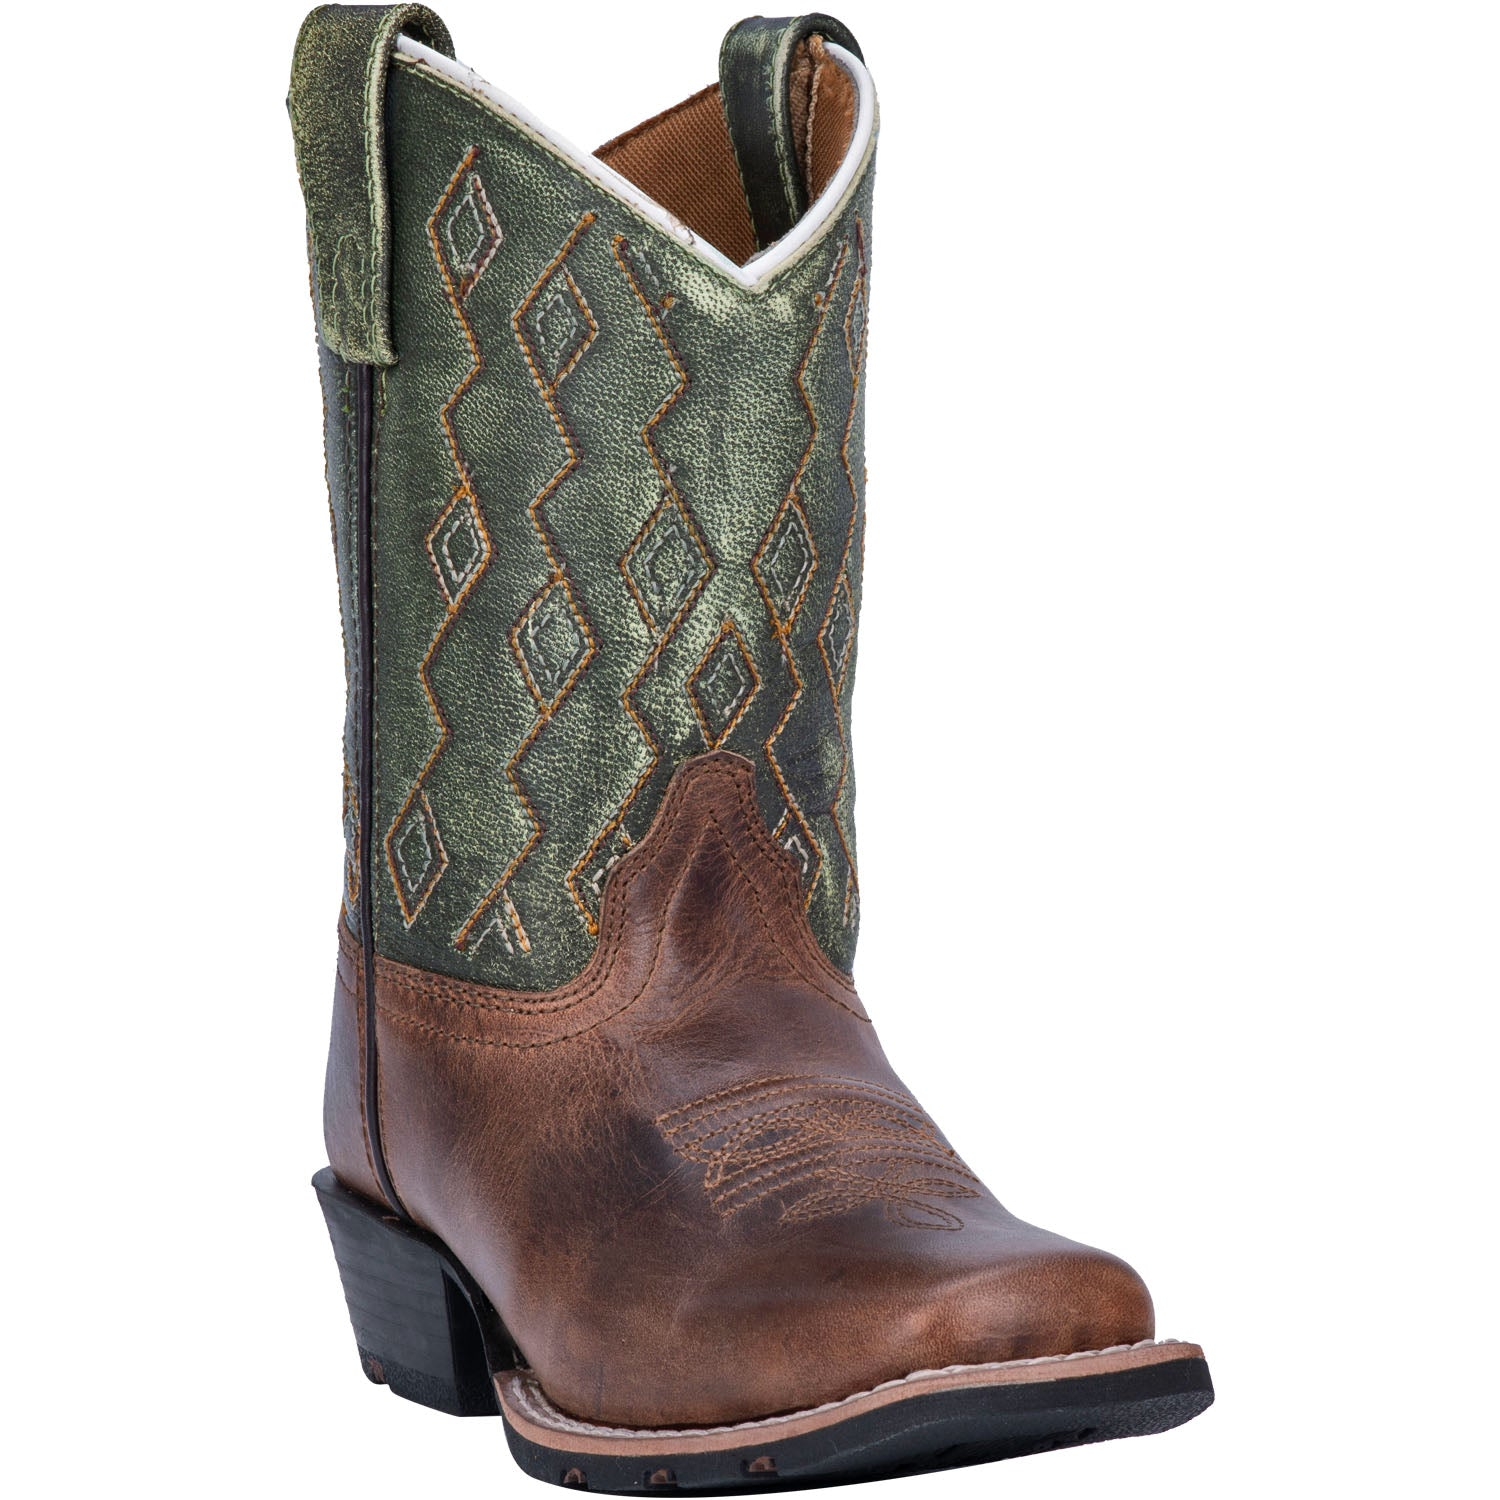 TEDDY LEATHER YOUTH BOOT 4254314496042